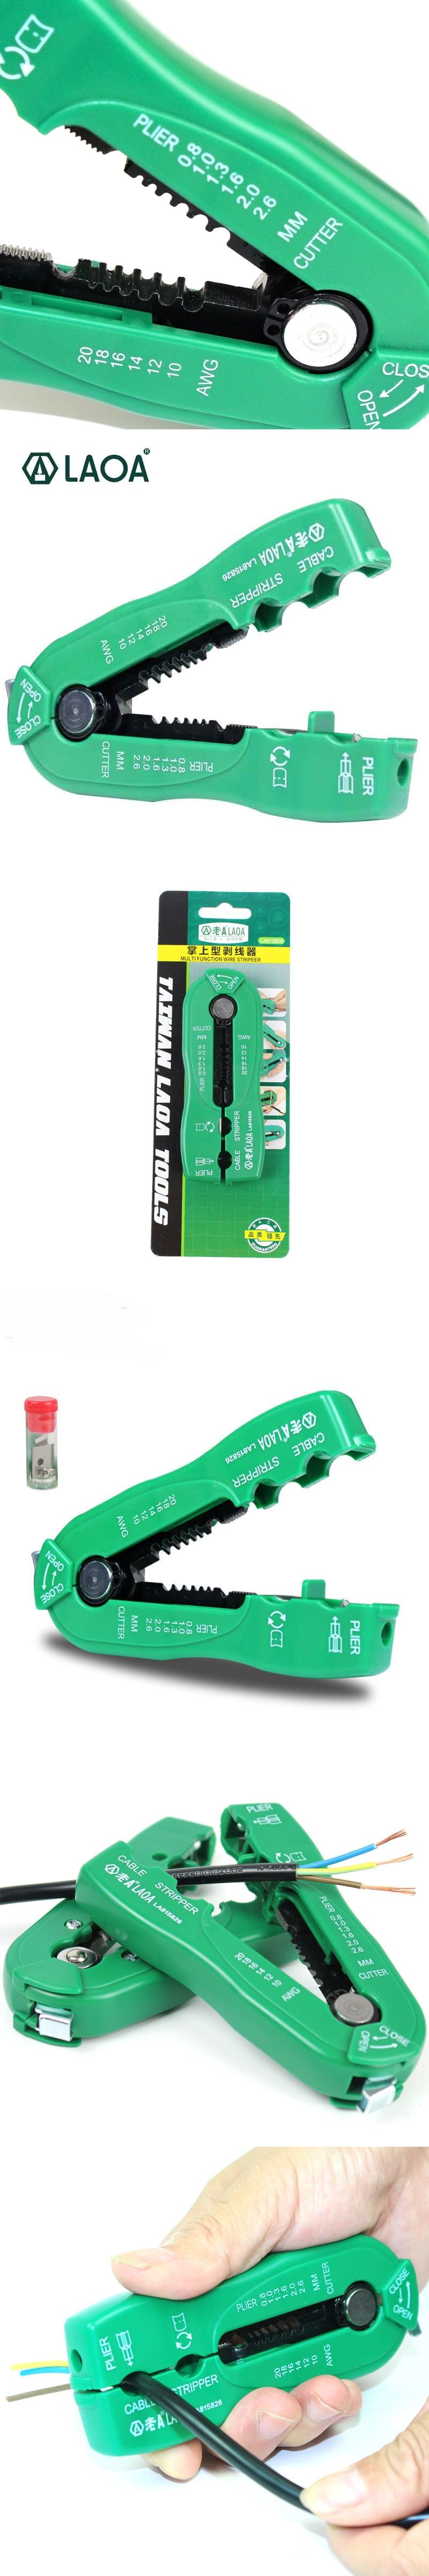 LAOA multifunction wire cutter cable stripper line wire stripping ...